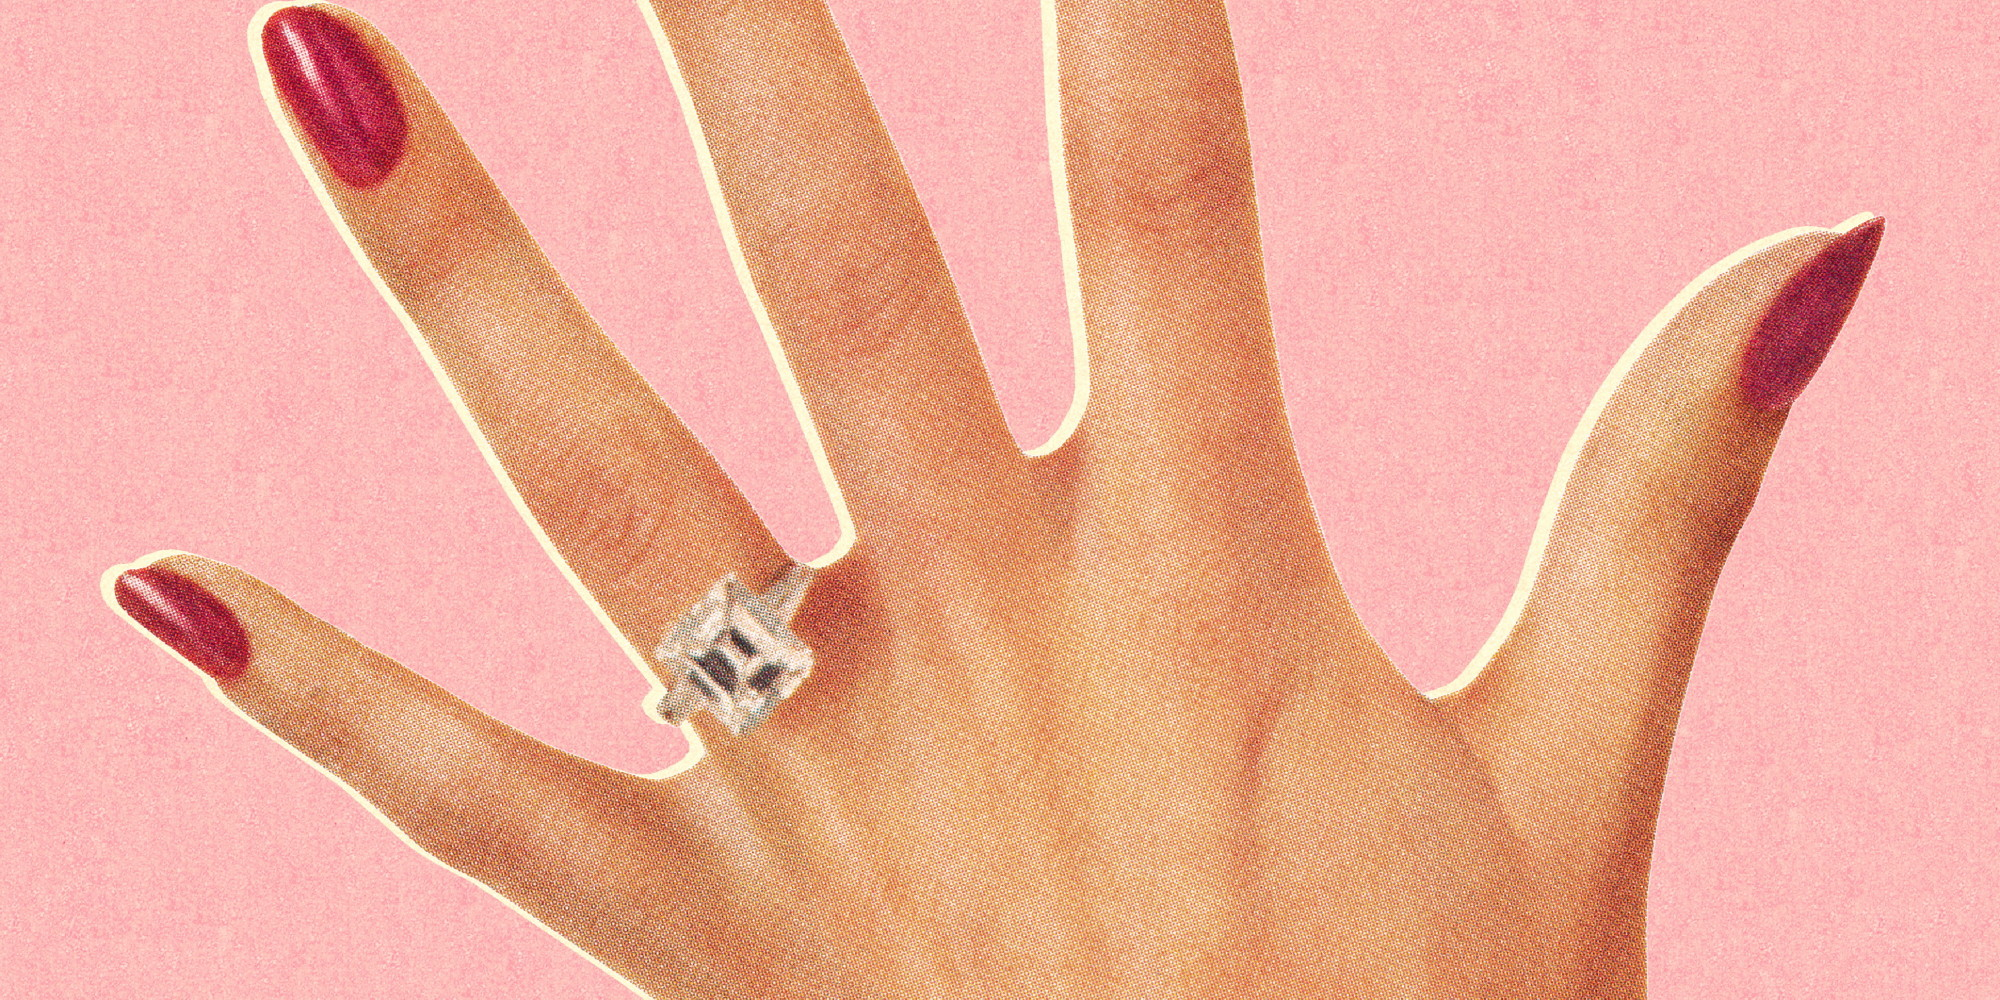 Are Engagement Rings Really Barbaric